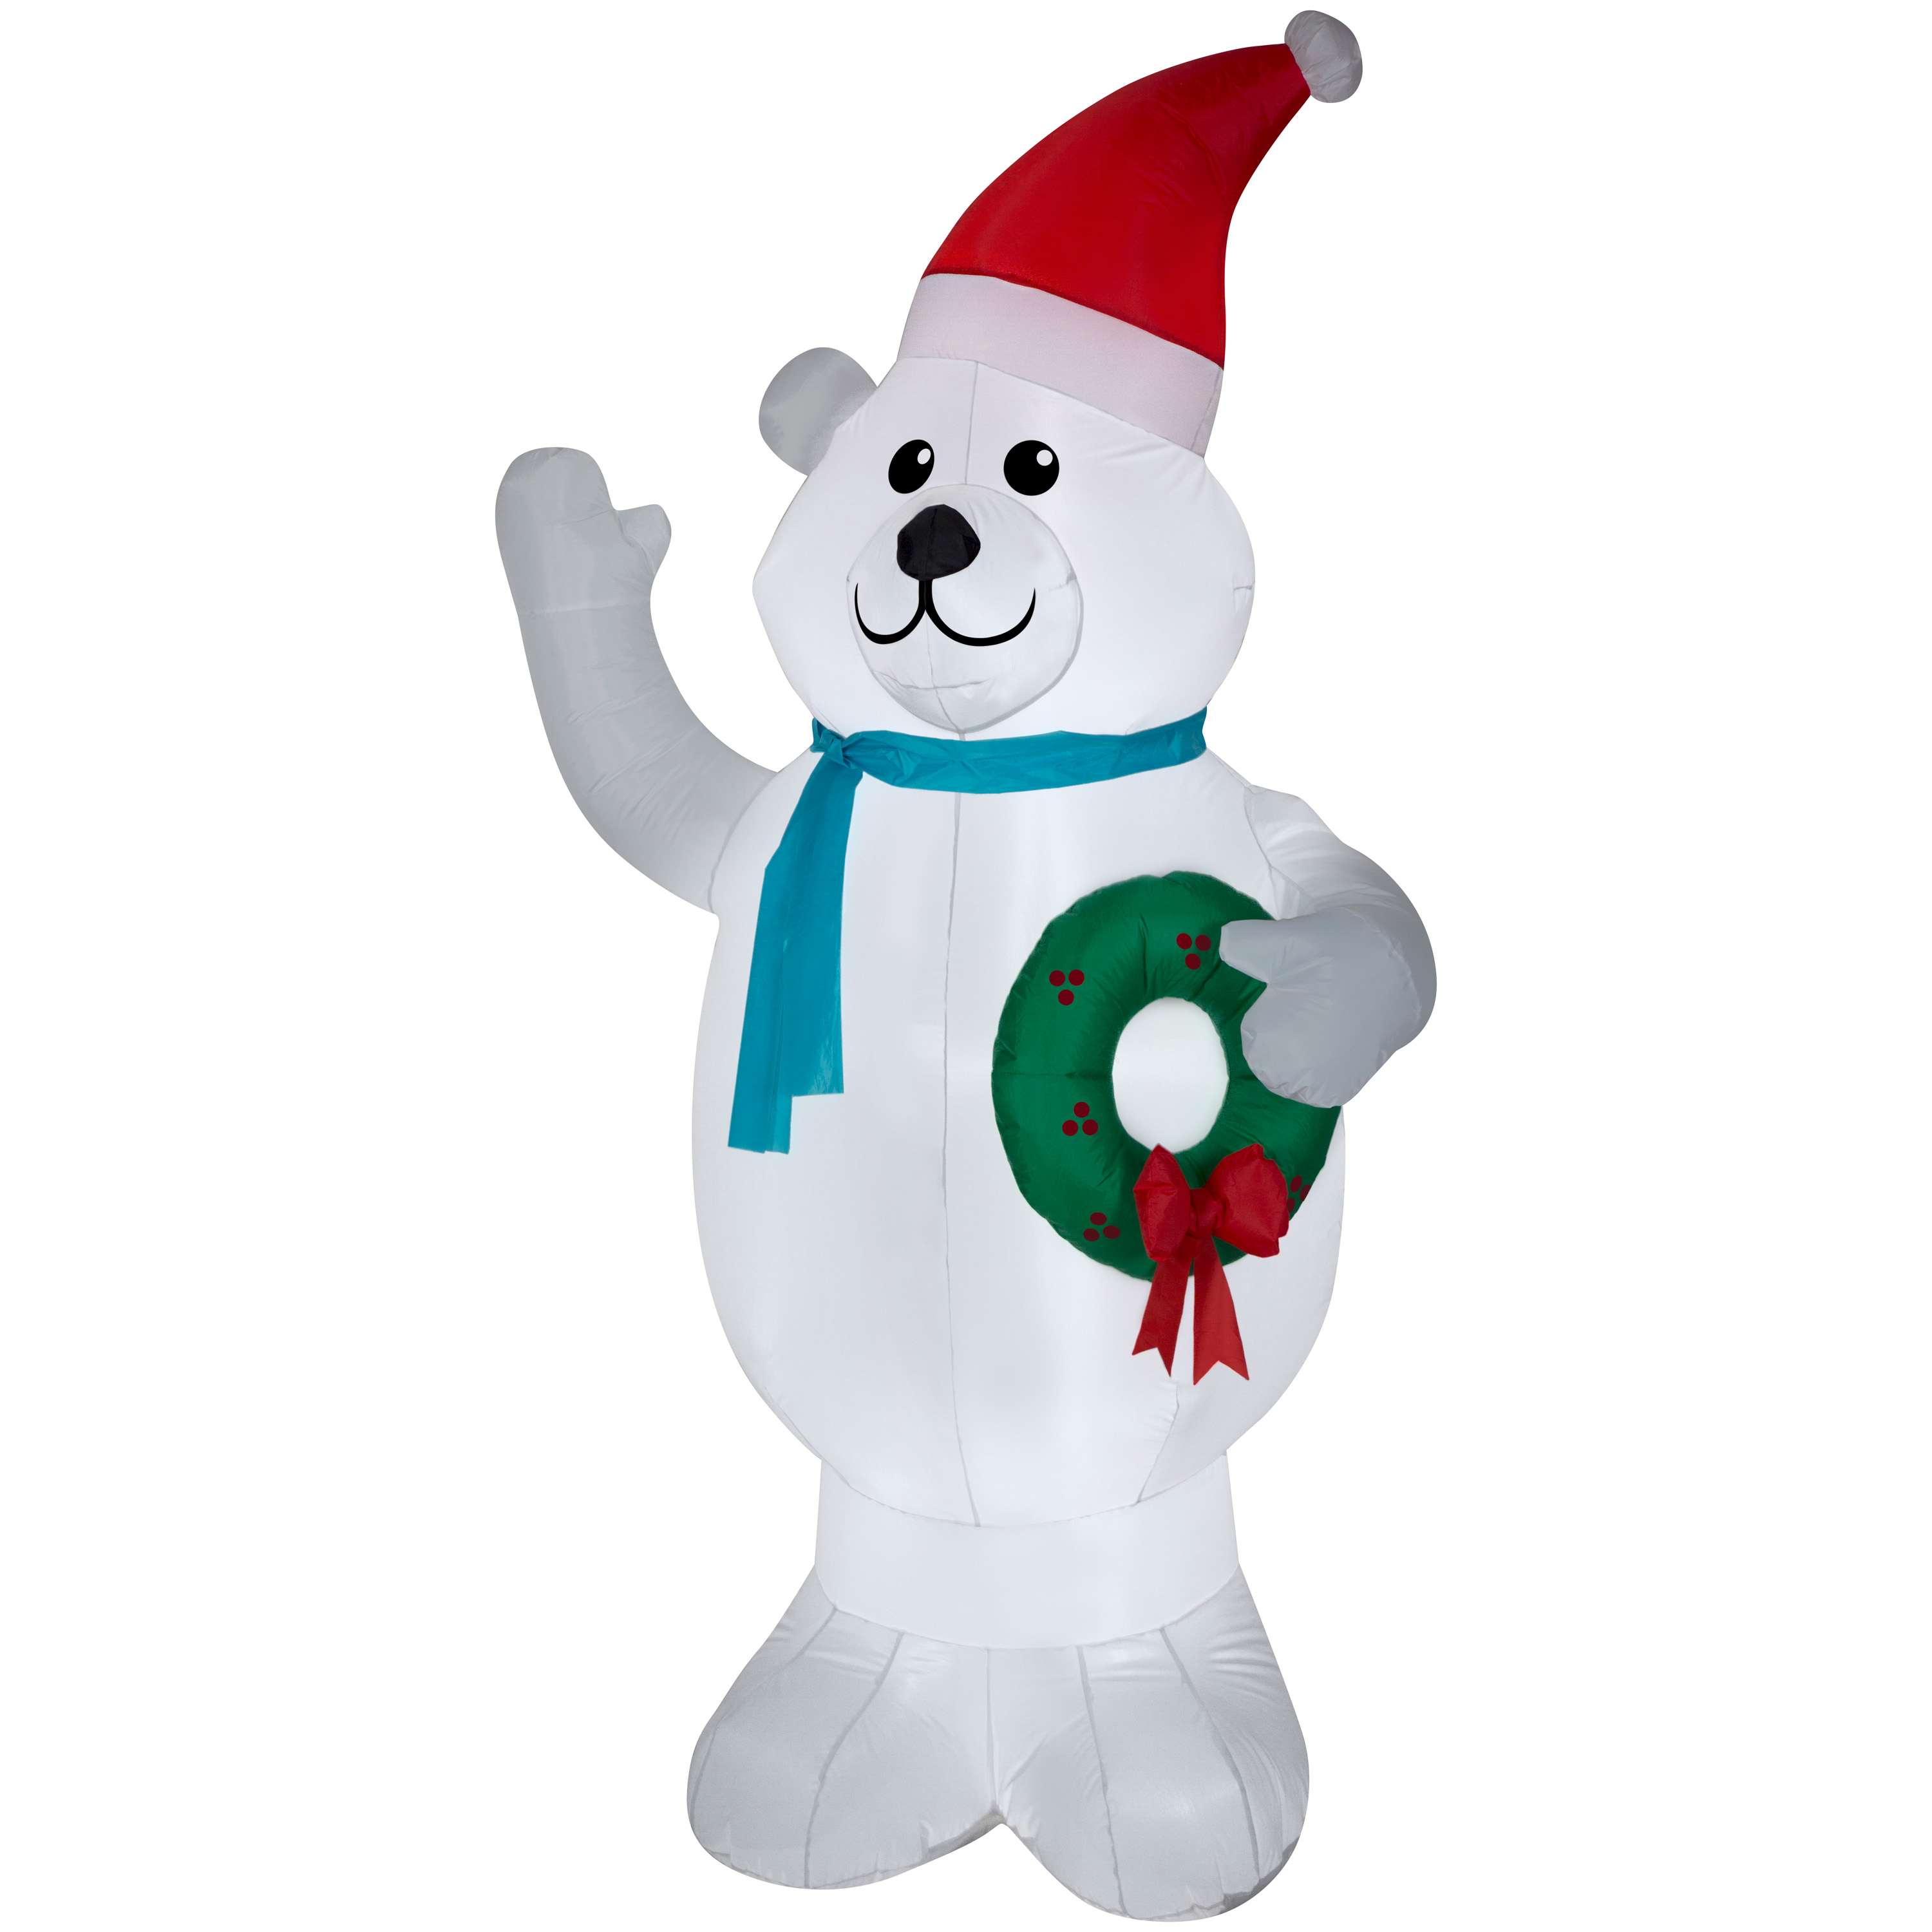 Airblown Inflatable Polar Bear w/Wreath 7ft tall by Gemmy Industries